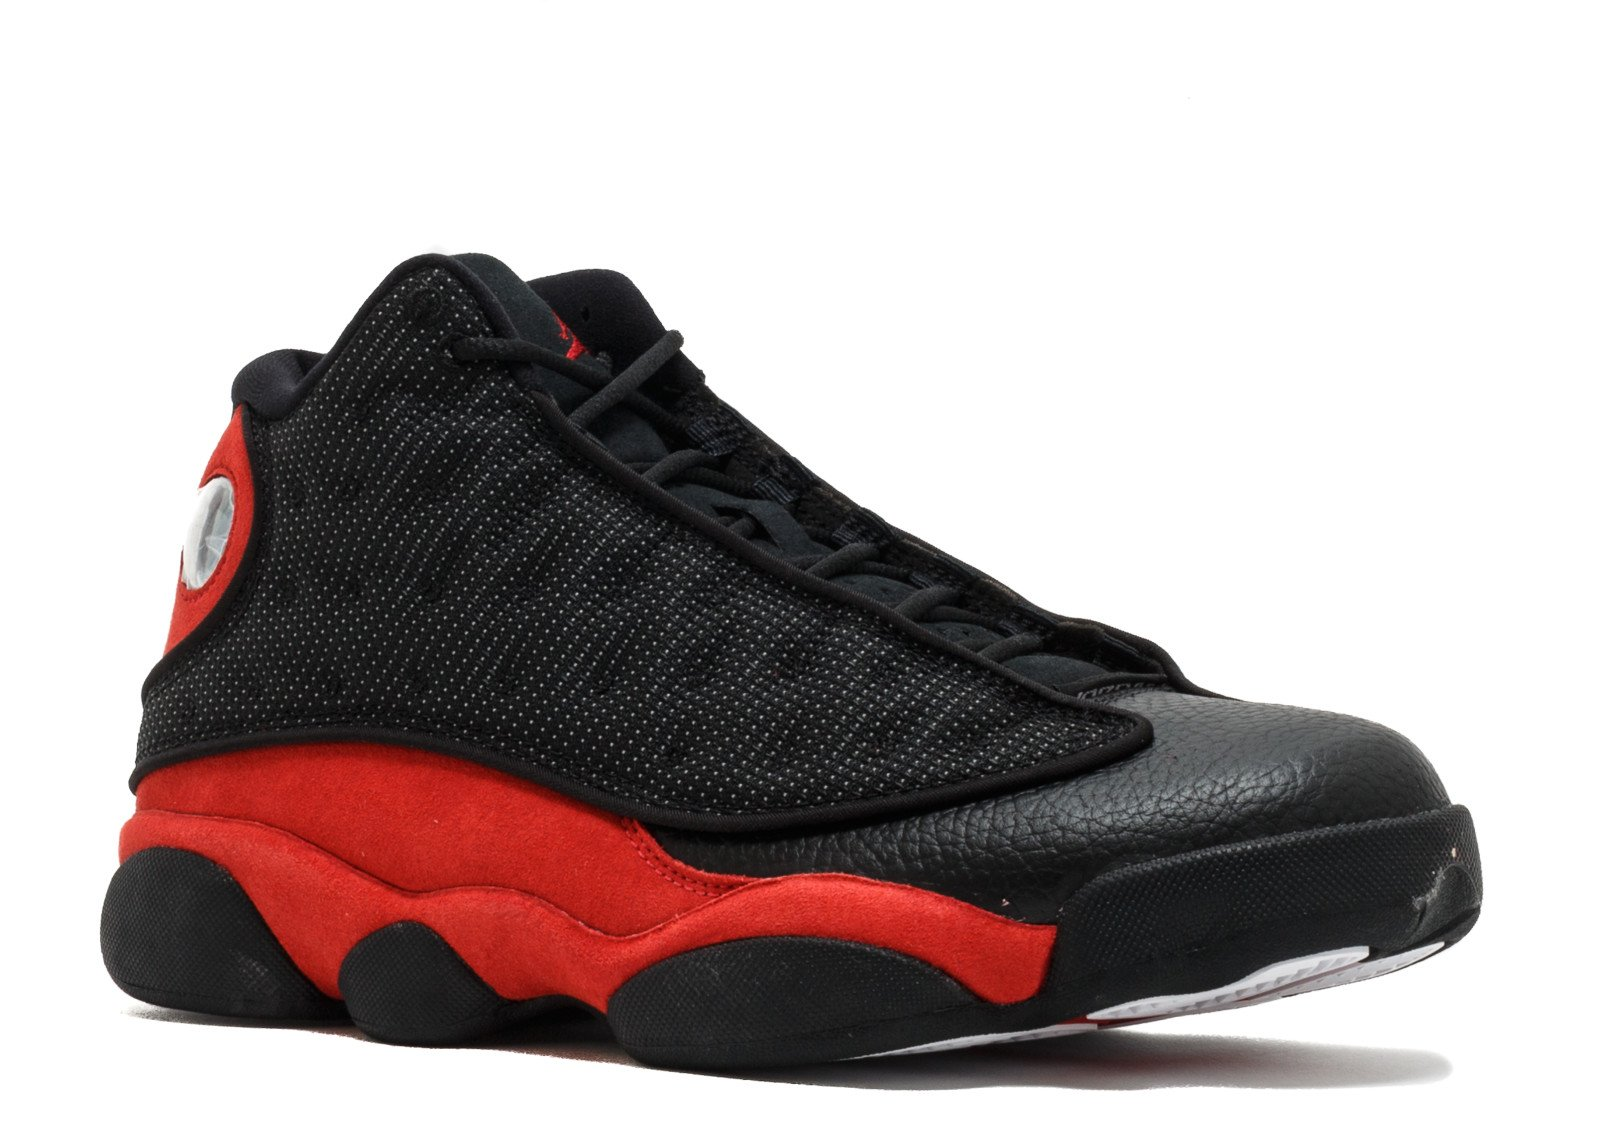 Jordan Air 13 Retro Mens Lifestyle Fashion Sneakers - 11.5